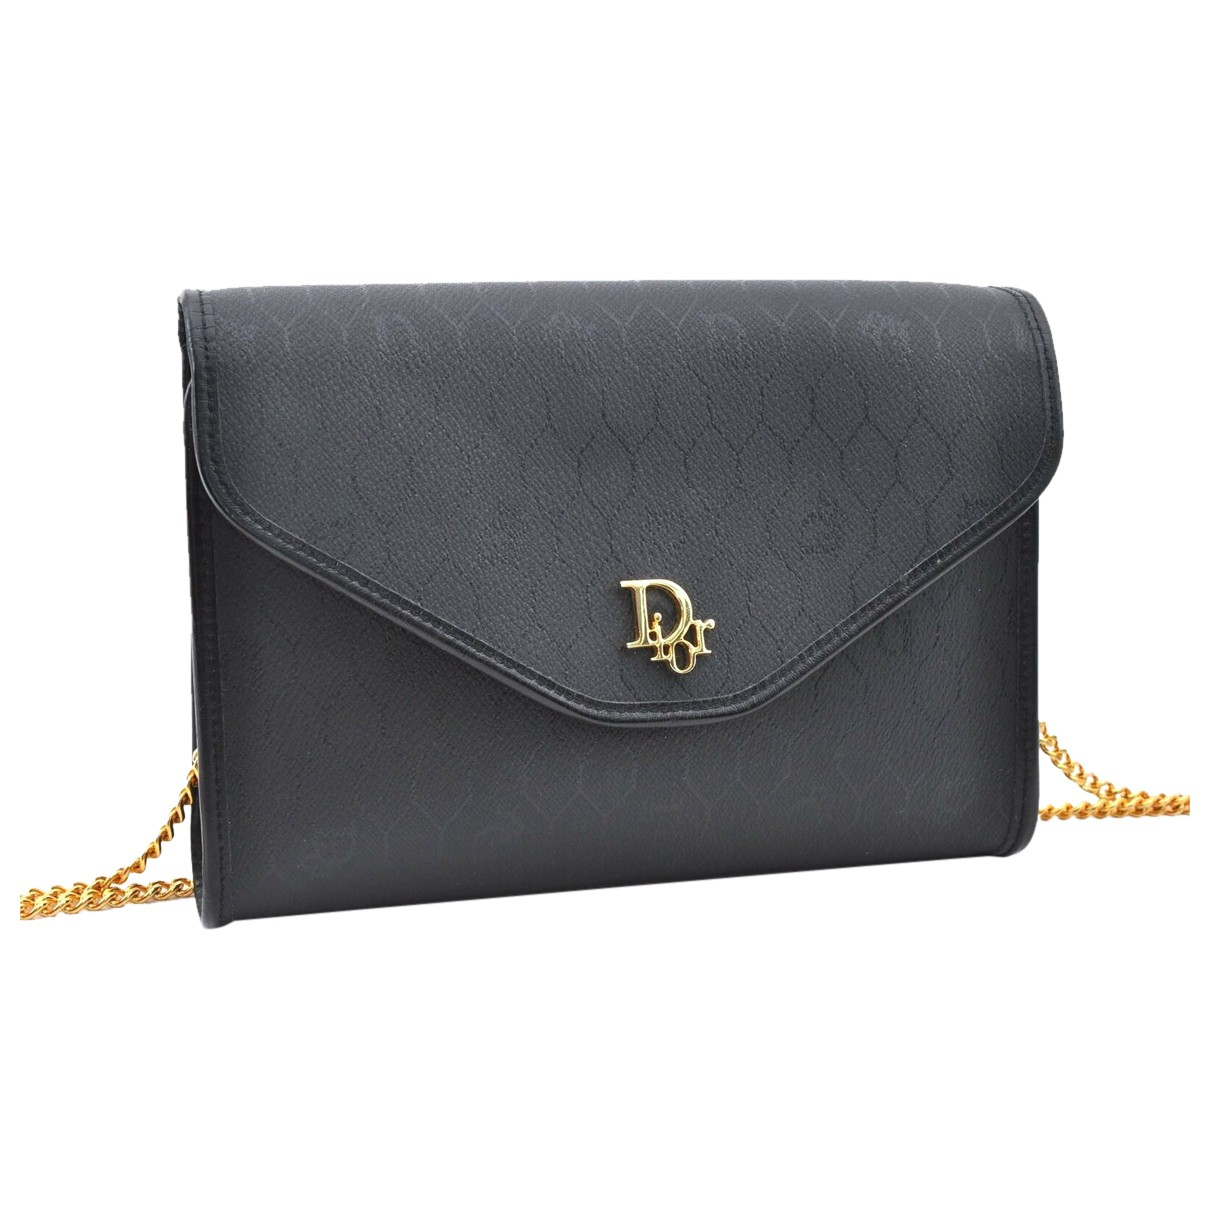 Dior N Black handbag for Women N